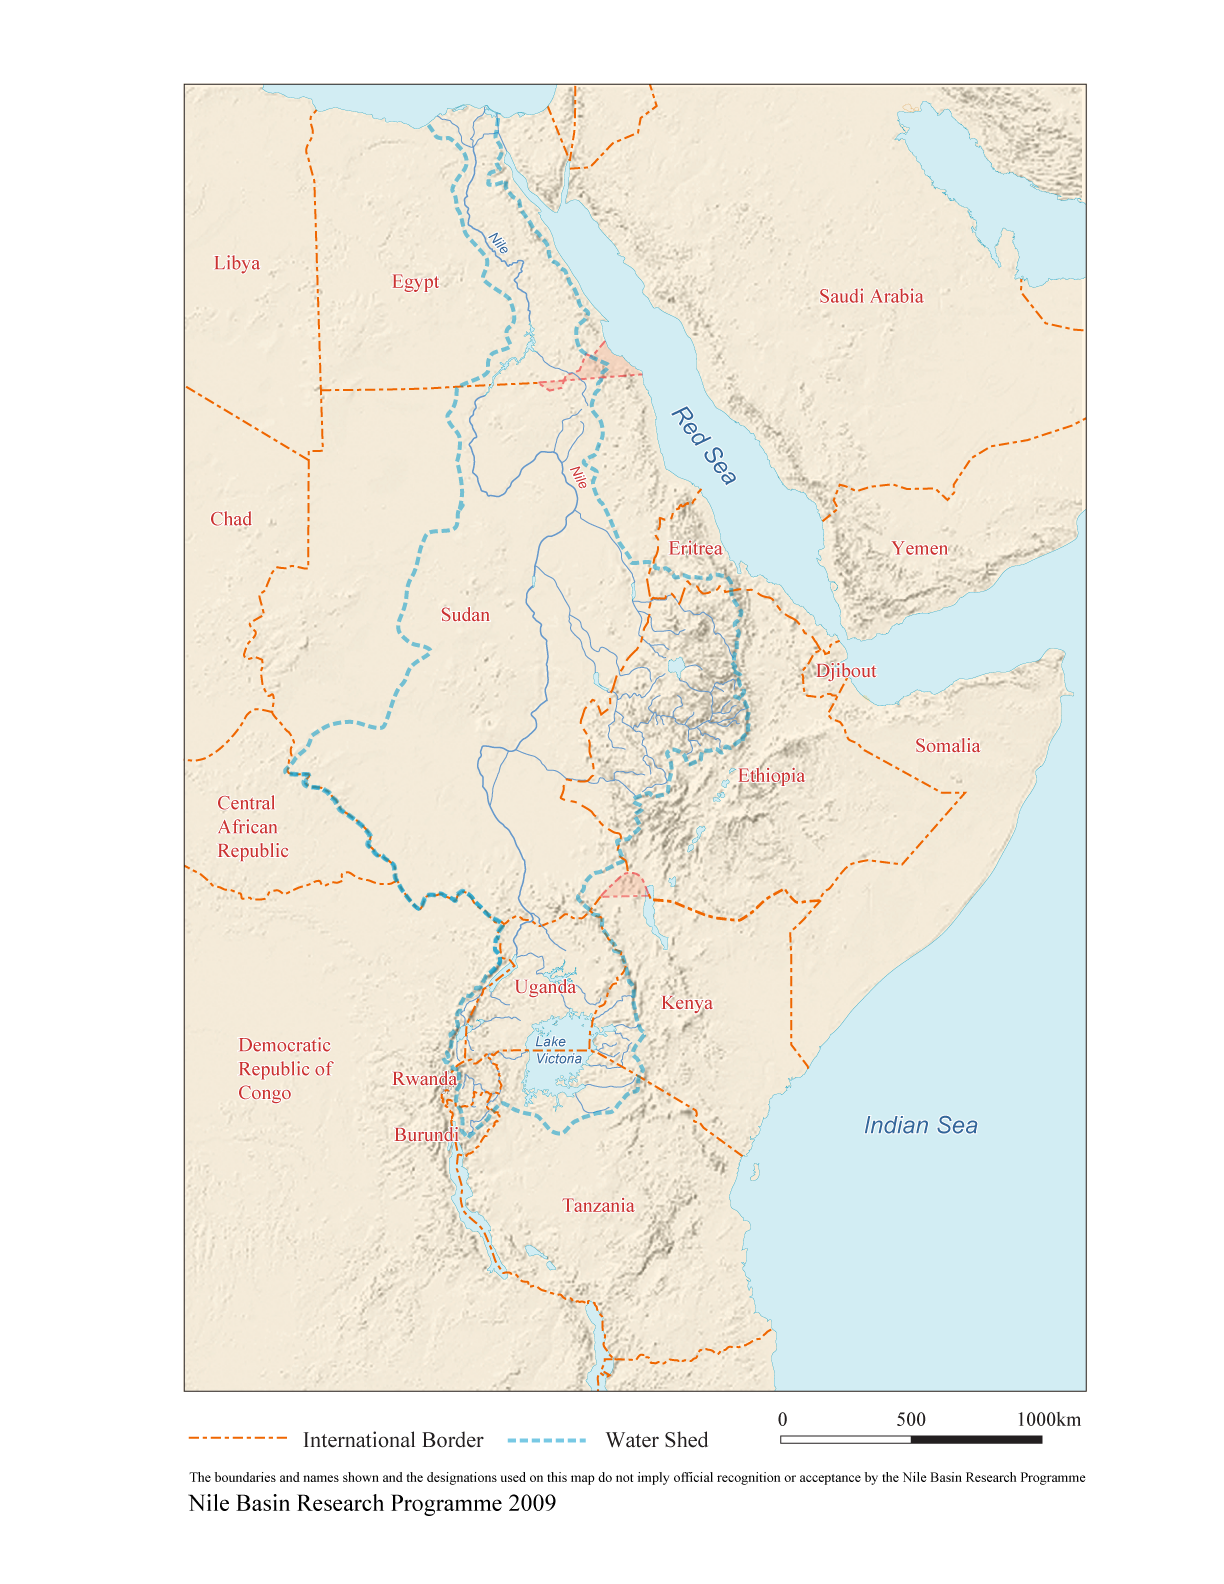 Map Of Africa River Nile.Maps Of The Nile Basin Nile Basin Research Programme University